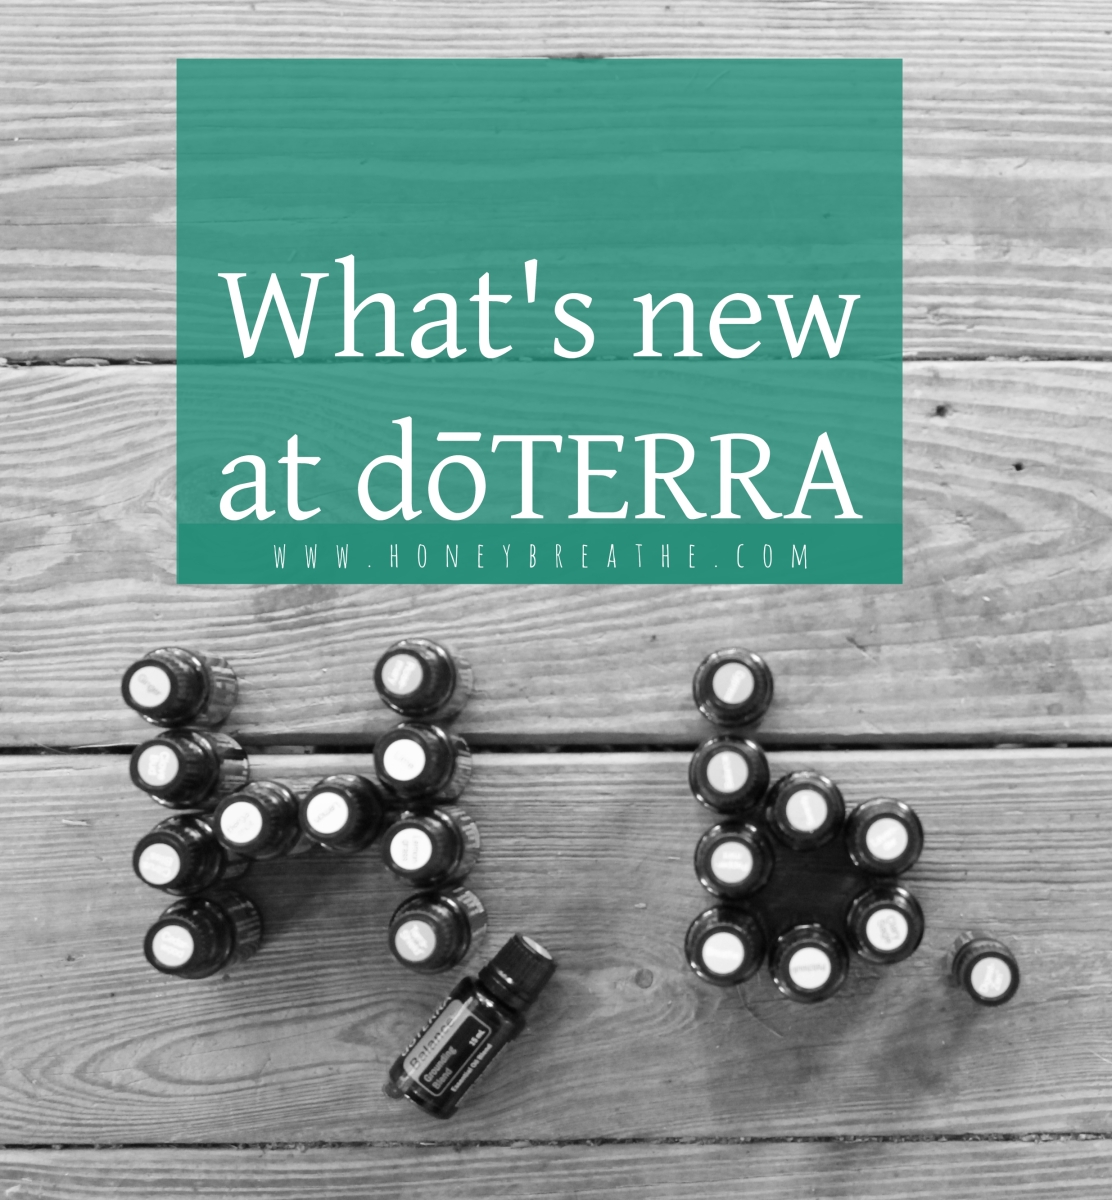 What is new with dōTERRA's?!